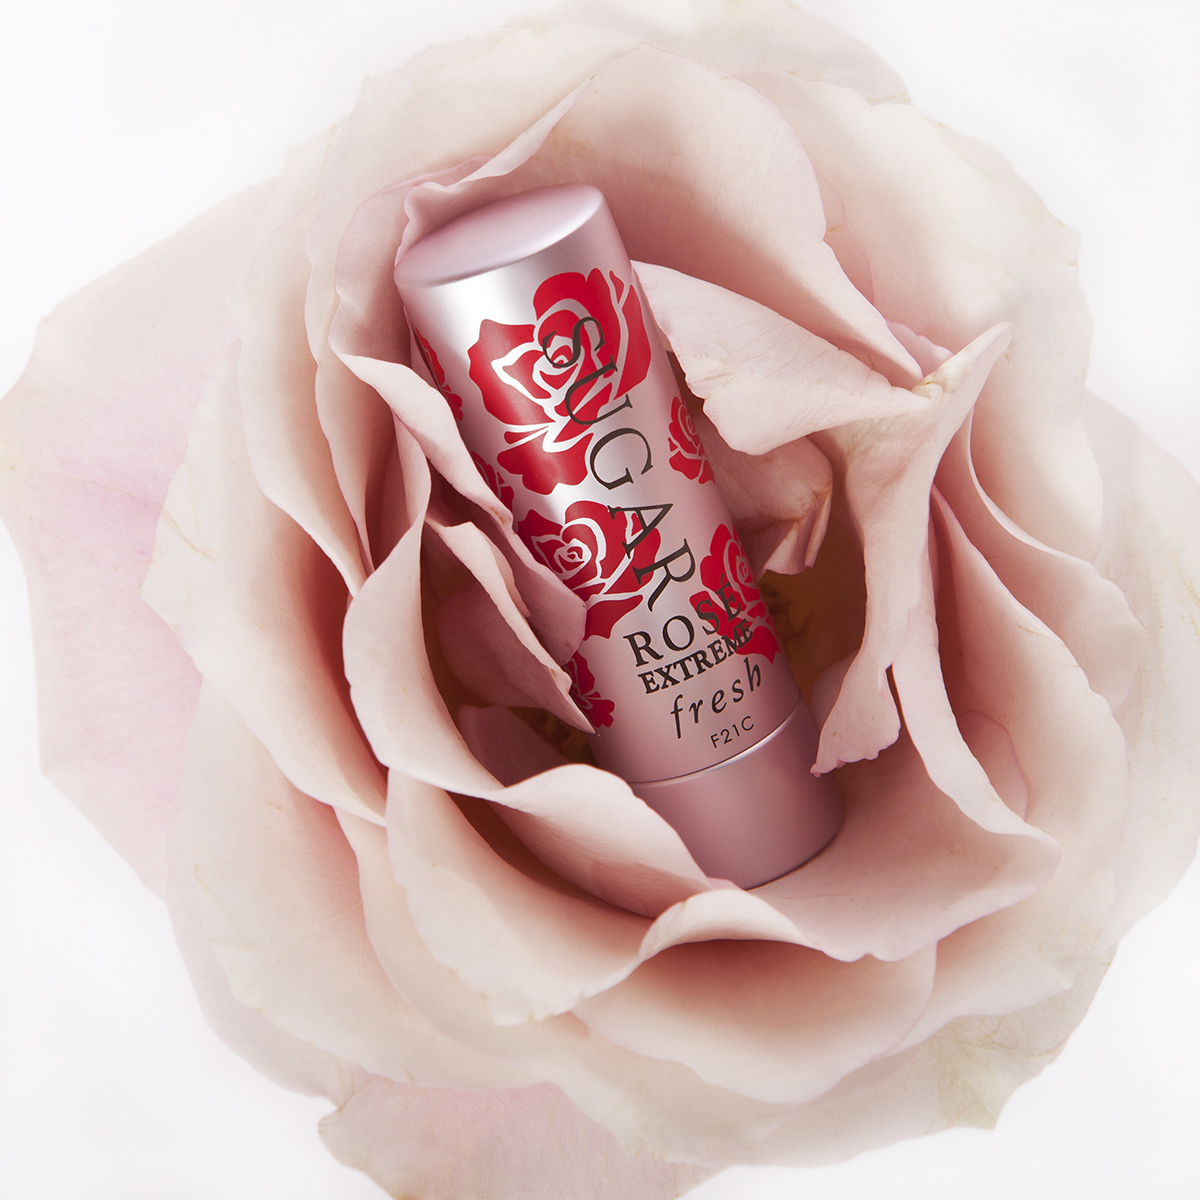 Fresh Rose Extreme in Rose.jpg